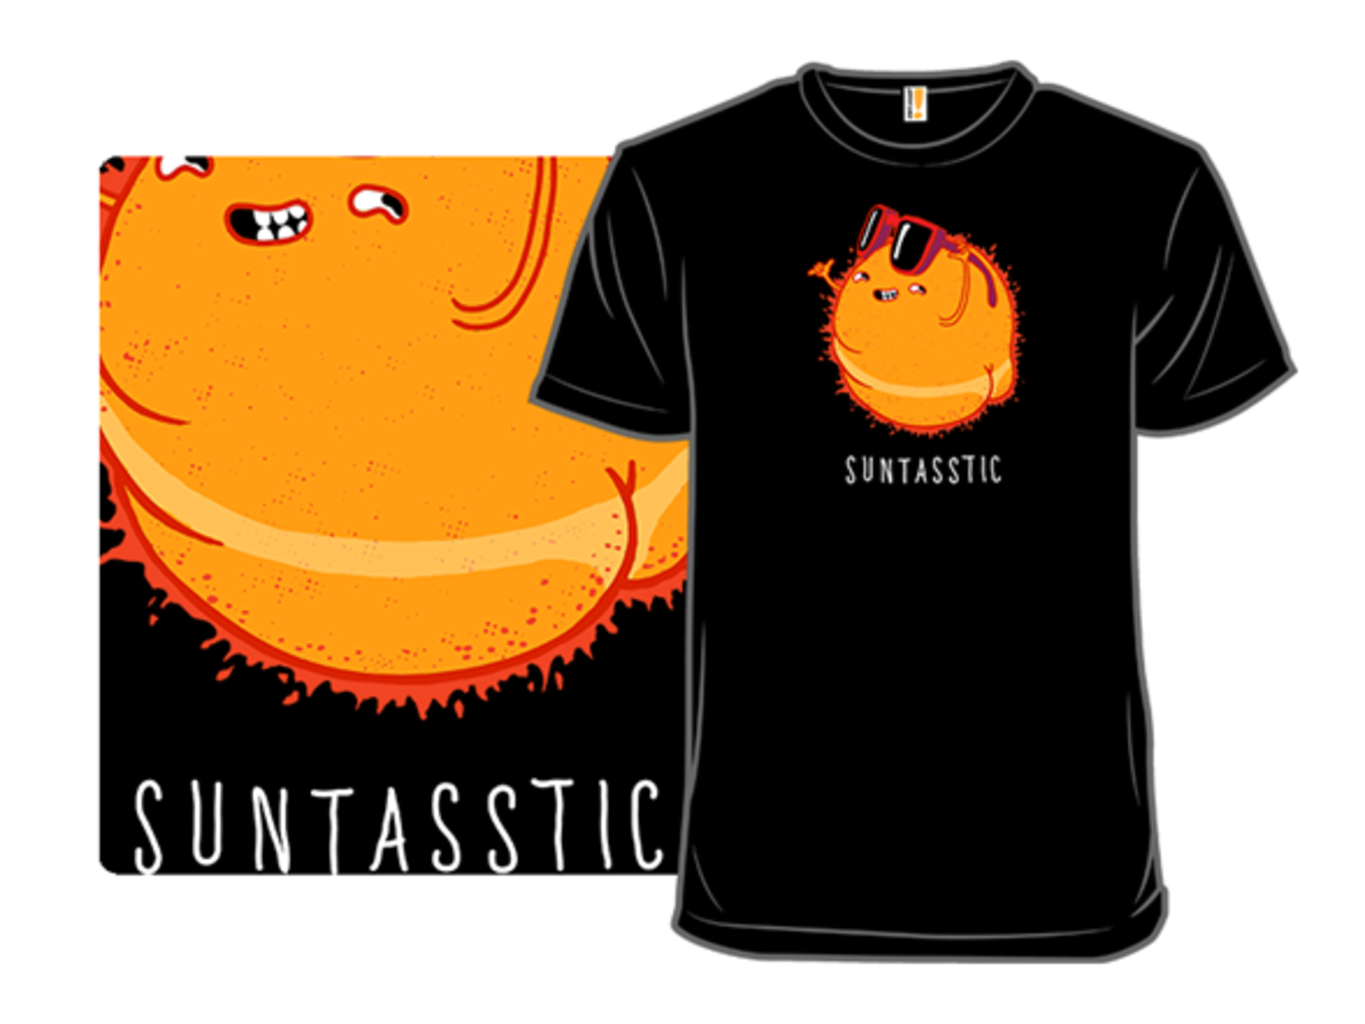 Woot!: Suntasstic - $8.00 + $5 standard shipping